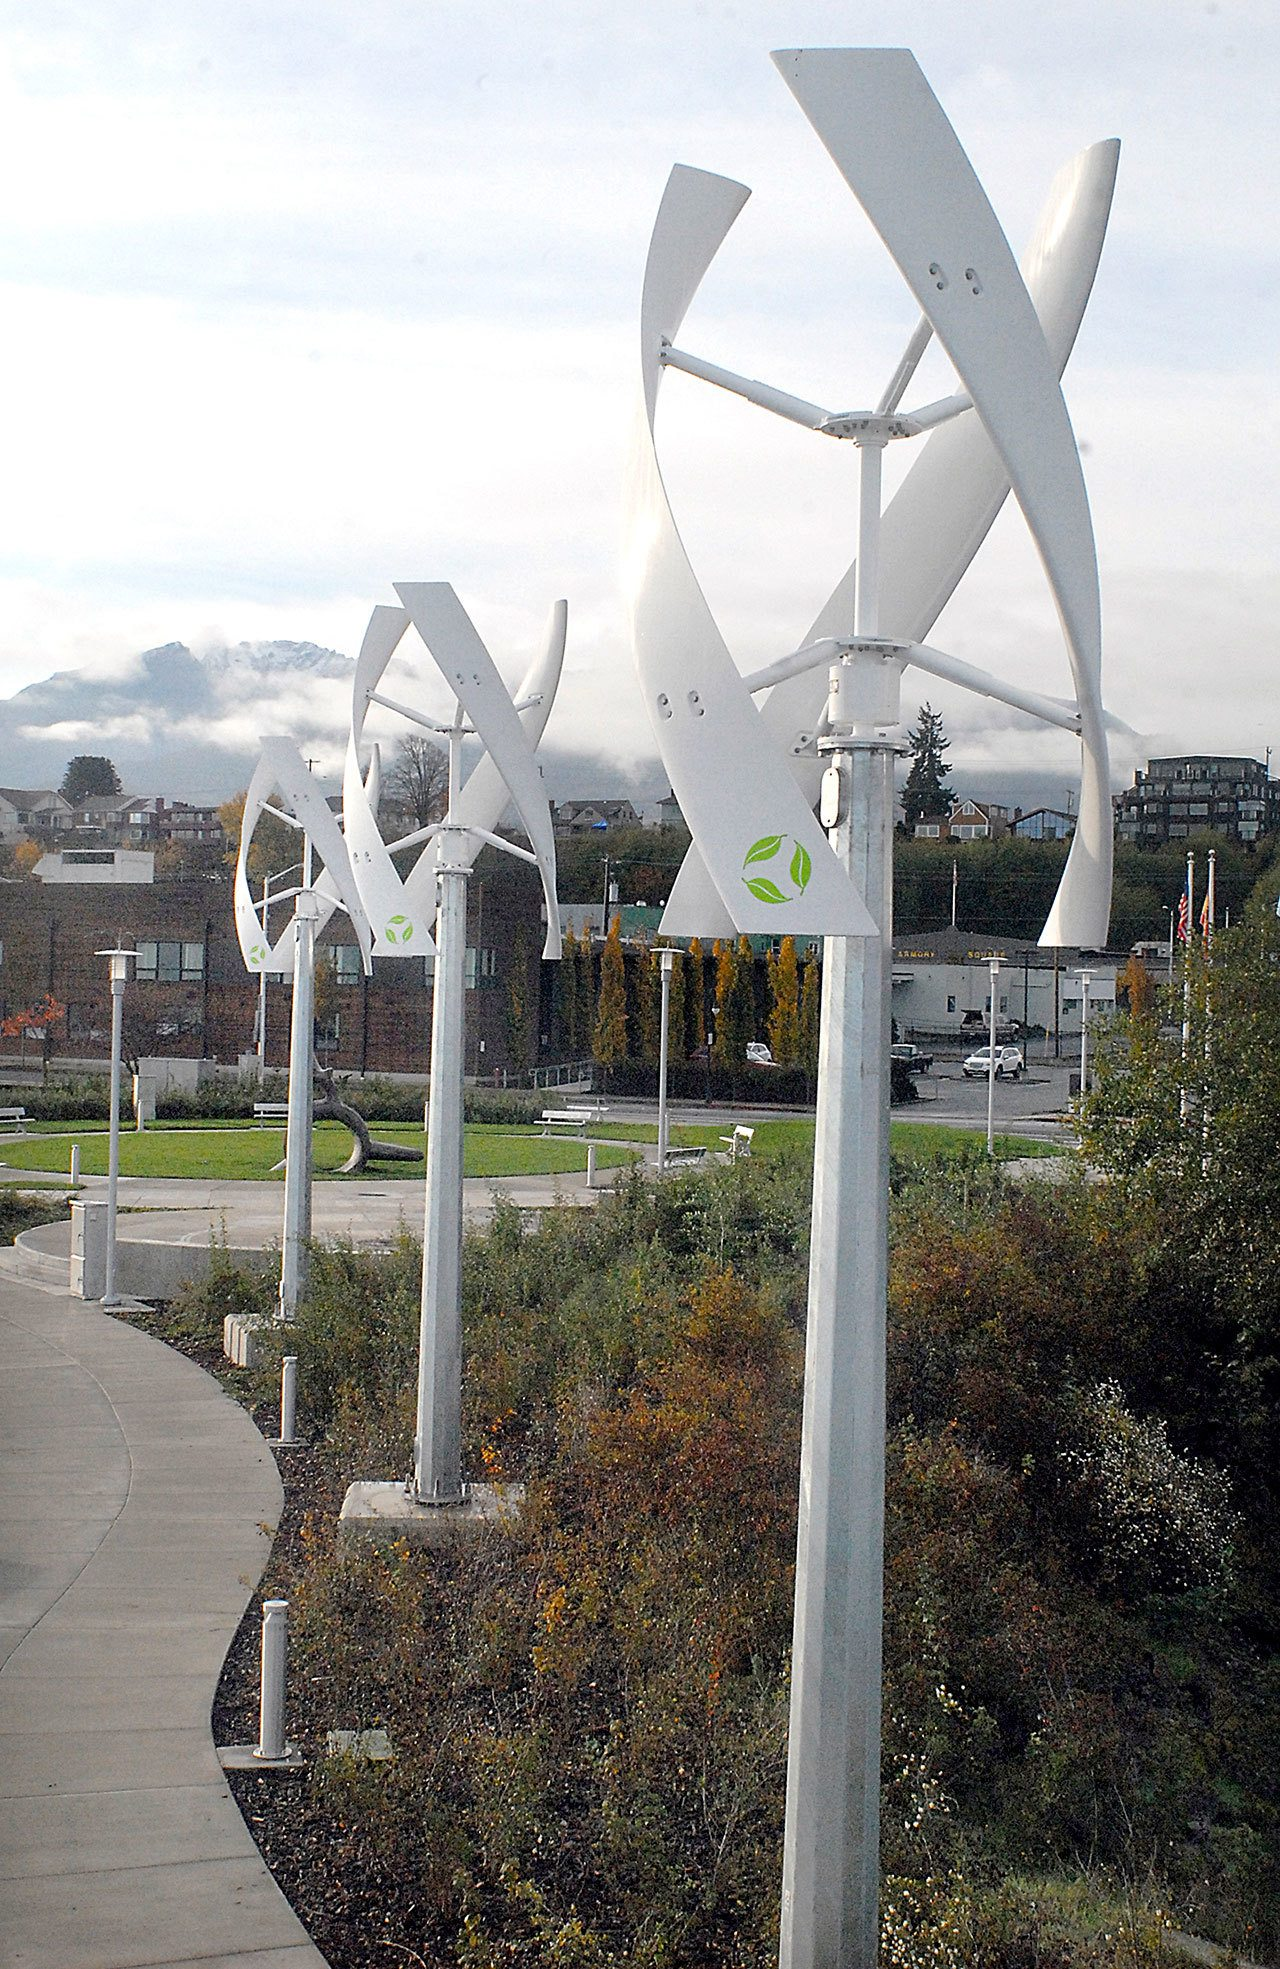 Numbers Vary On Turbine Electrical Generation Intent Not